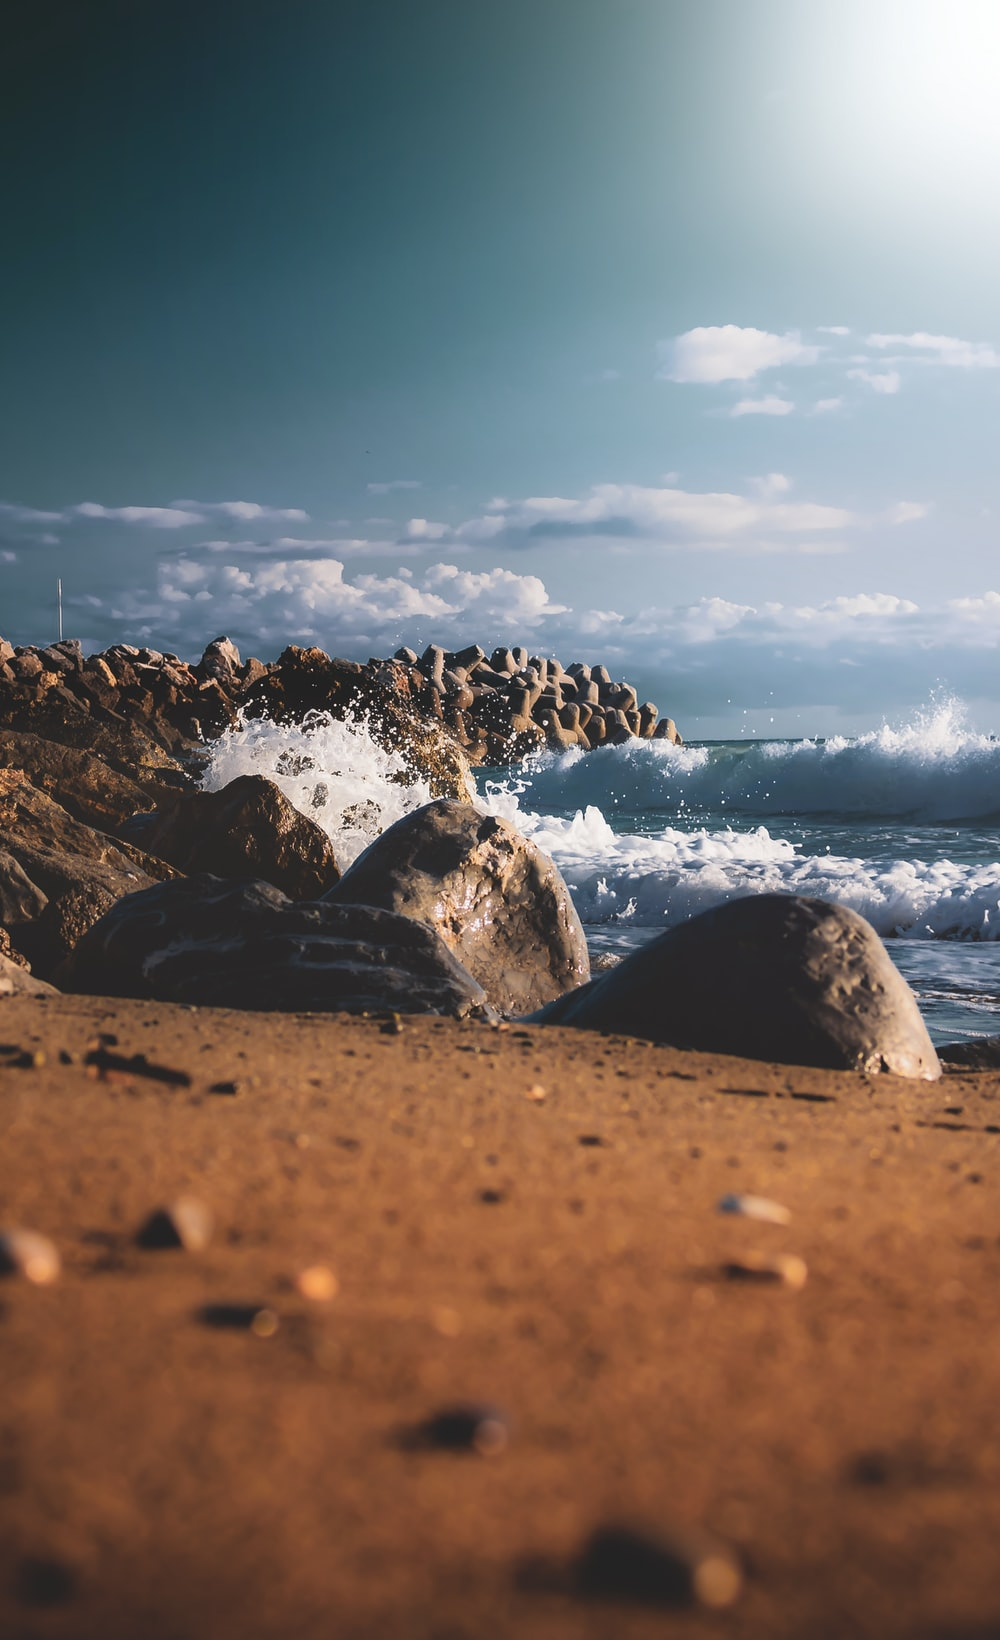 sea waves hitting on rock formations